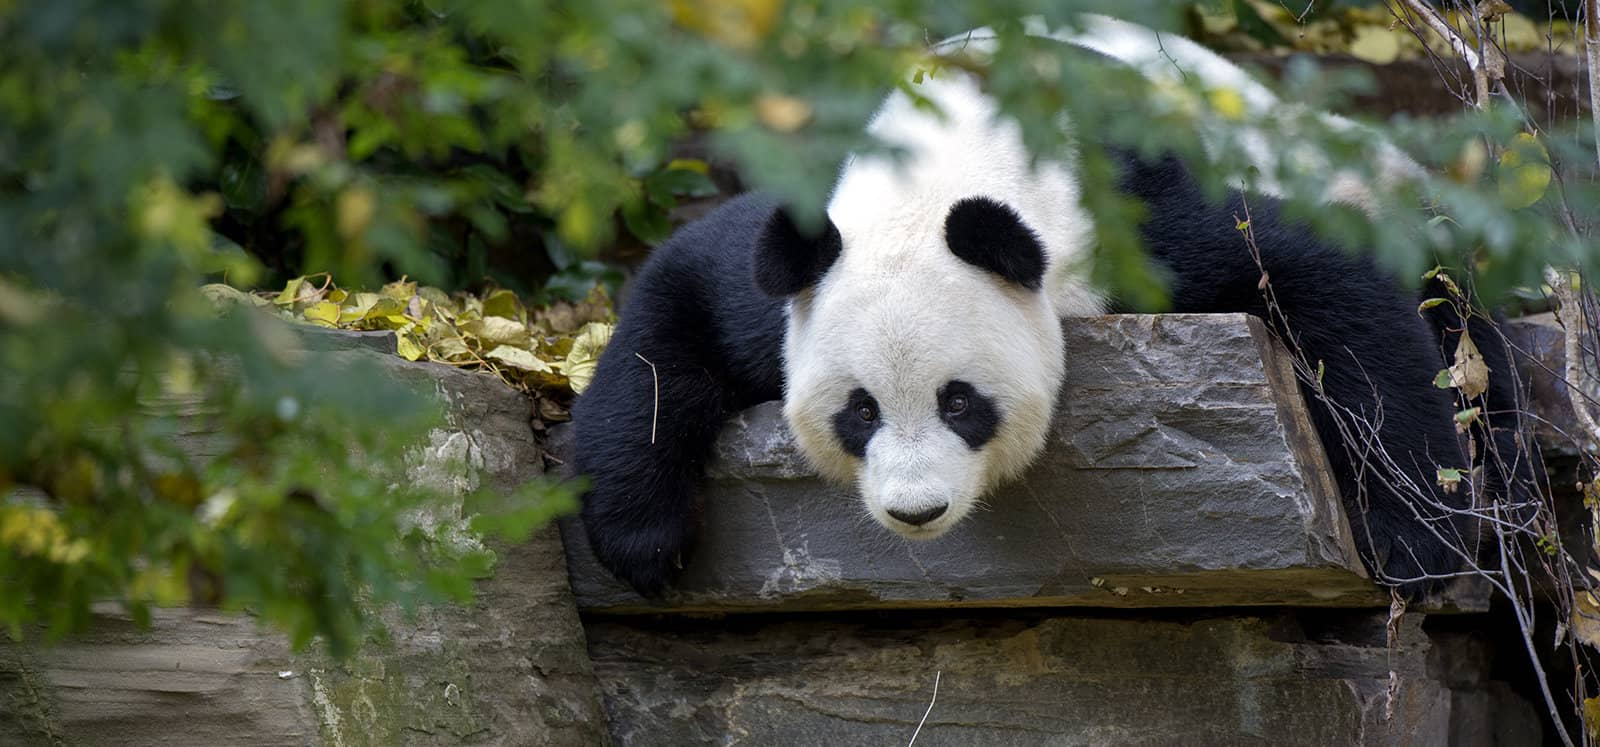 Giant Panda lying on rock at Adelaide Zoo